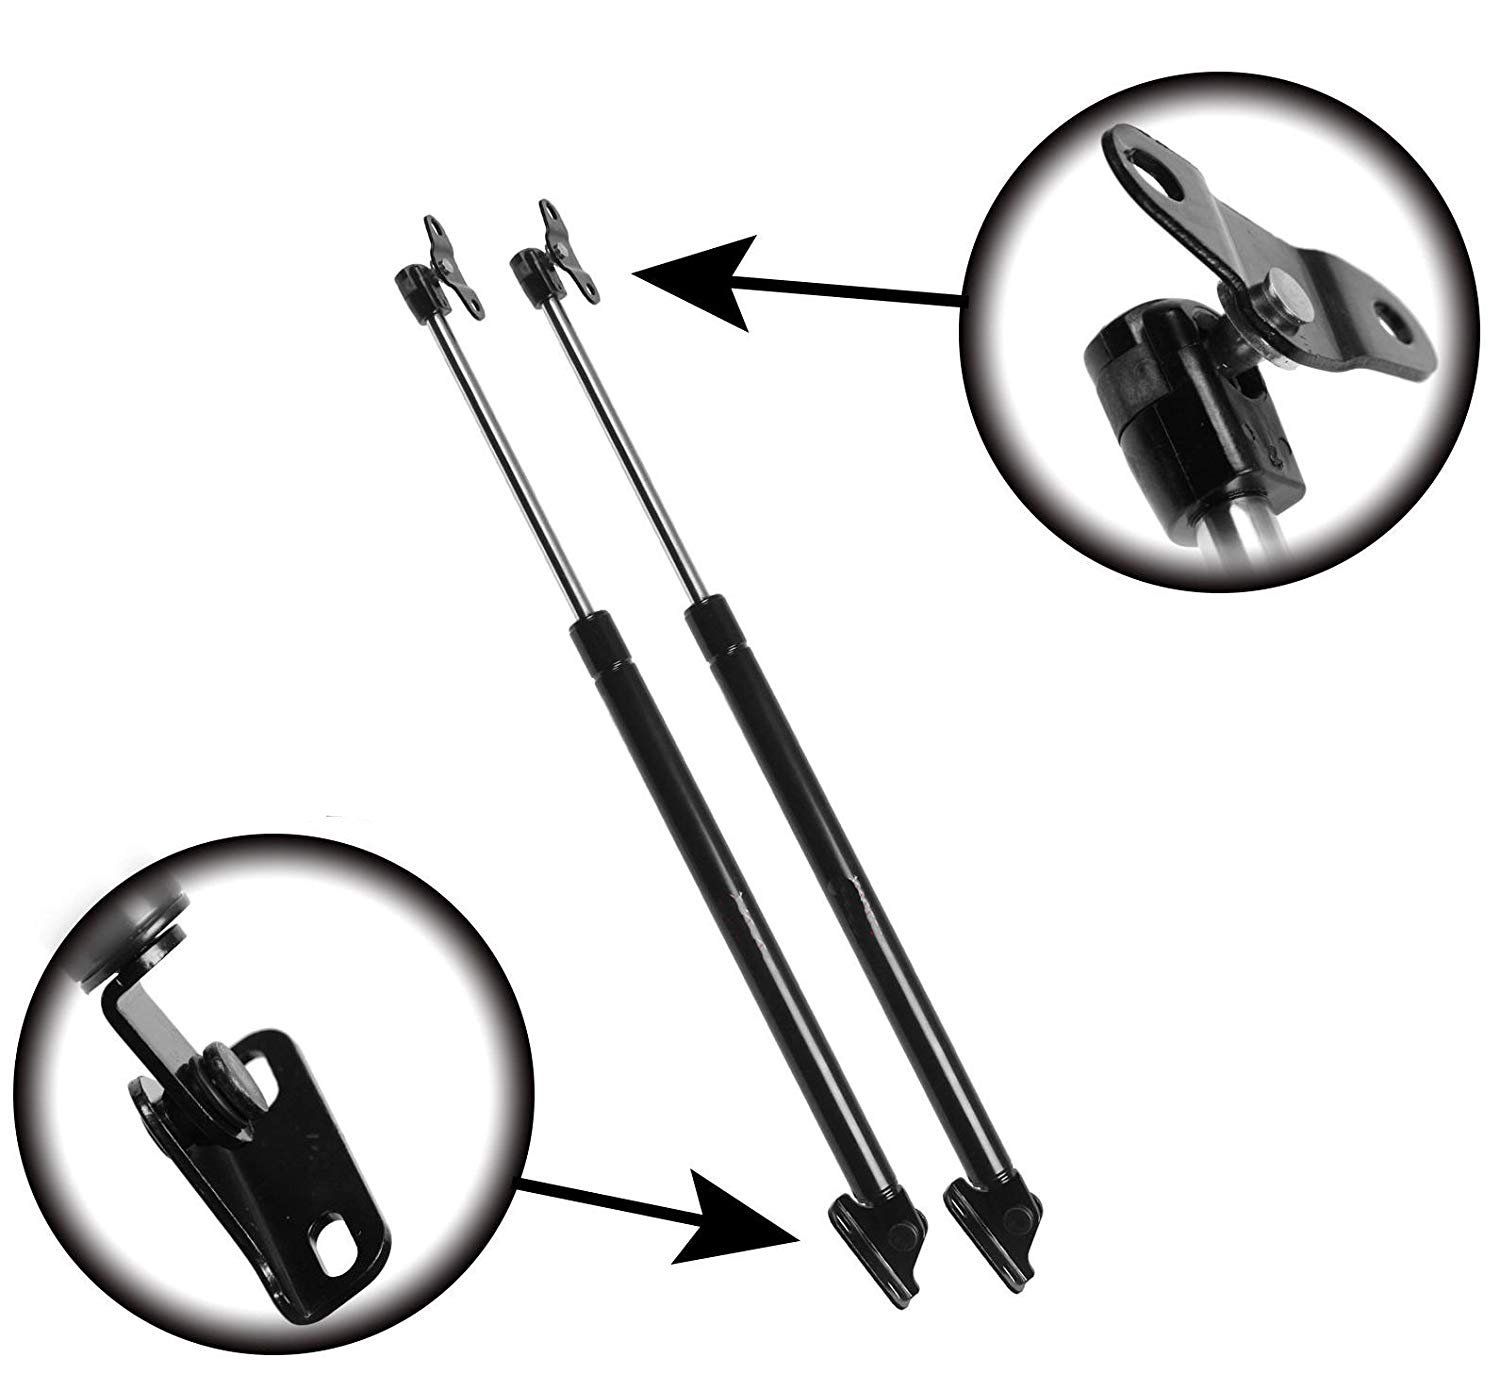 For Lexus RX300 1999-2003 Rear Liftgate Lift Supports Strut, Set of 2